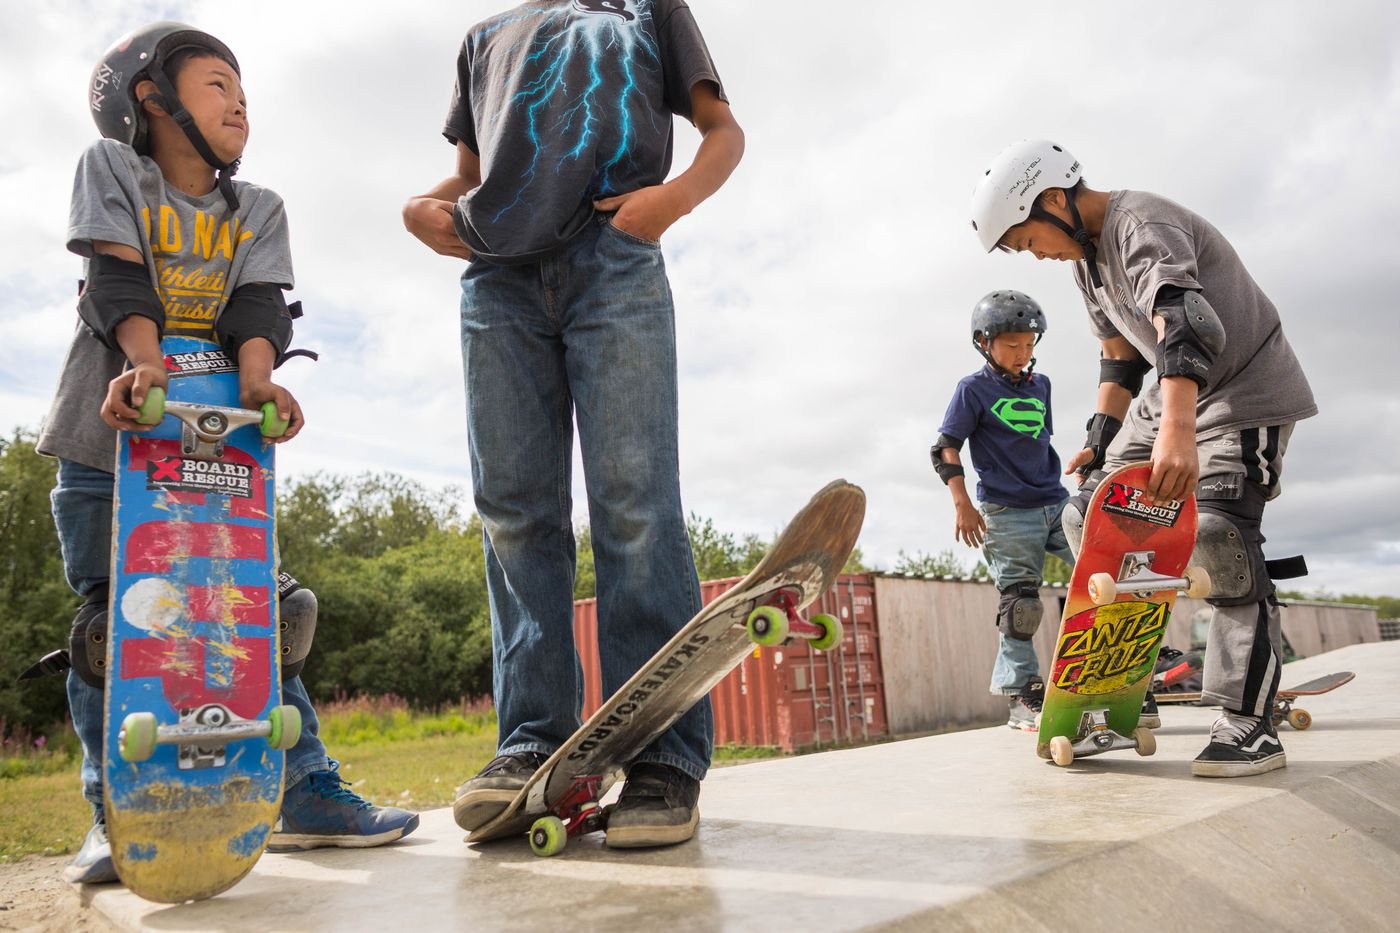 From left, Devin Jackson, 8, Ethan Nicolai, 13, Ian Fischer, 9, and Evan Waska, 13, hang out at the Kwethluk skate park on Friday, August 7, 2015. The park, which was built with an Indian Health Services grant, is the only one of its kind in a small rural Alaska village. (Loren Holmes / ADN)